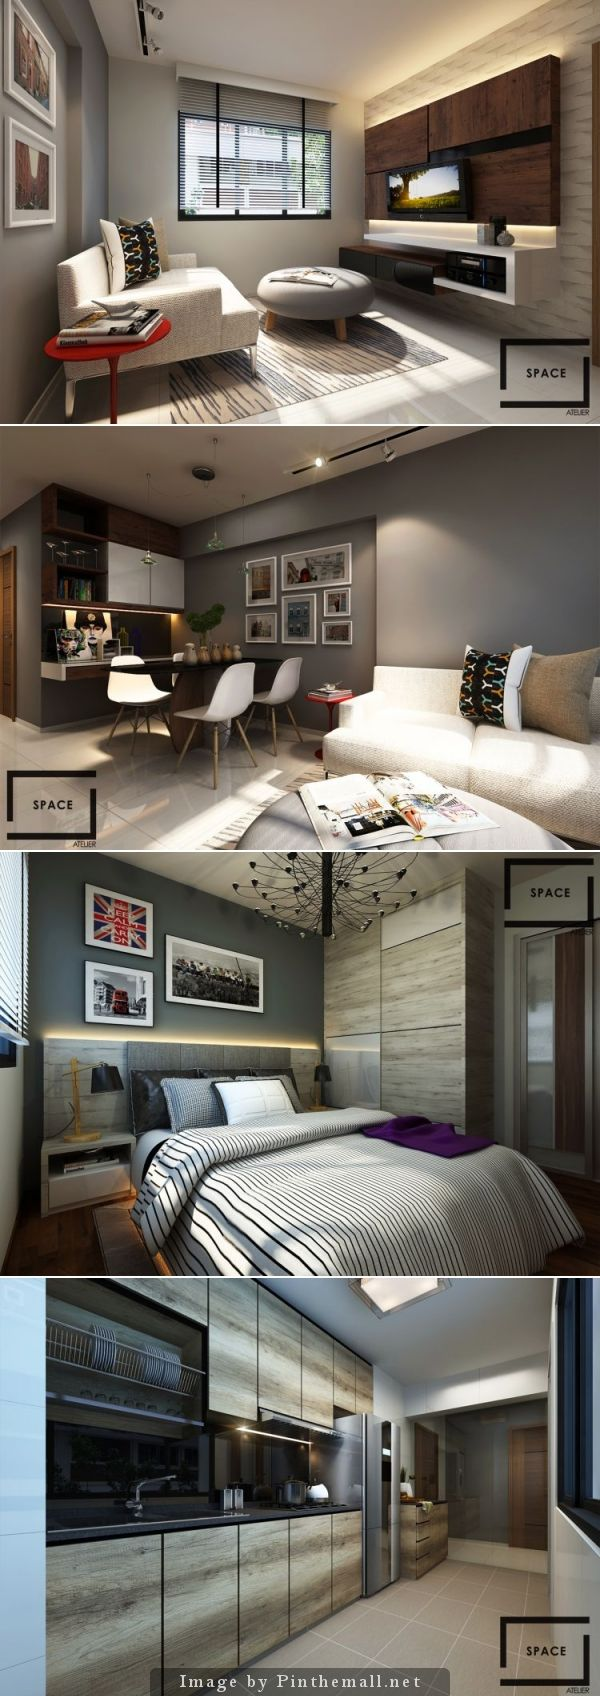 33 best images about hdb 2 room bto on pinterest dining for Hdb 2 room flat interior design ideas